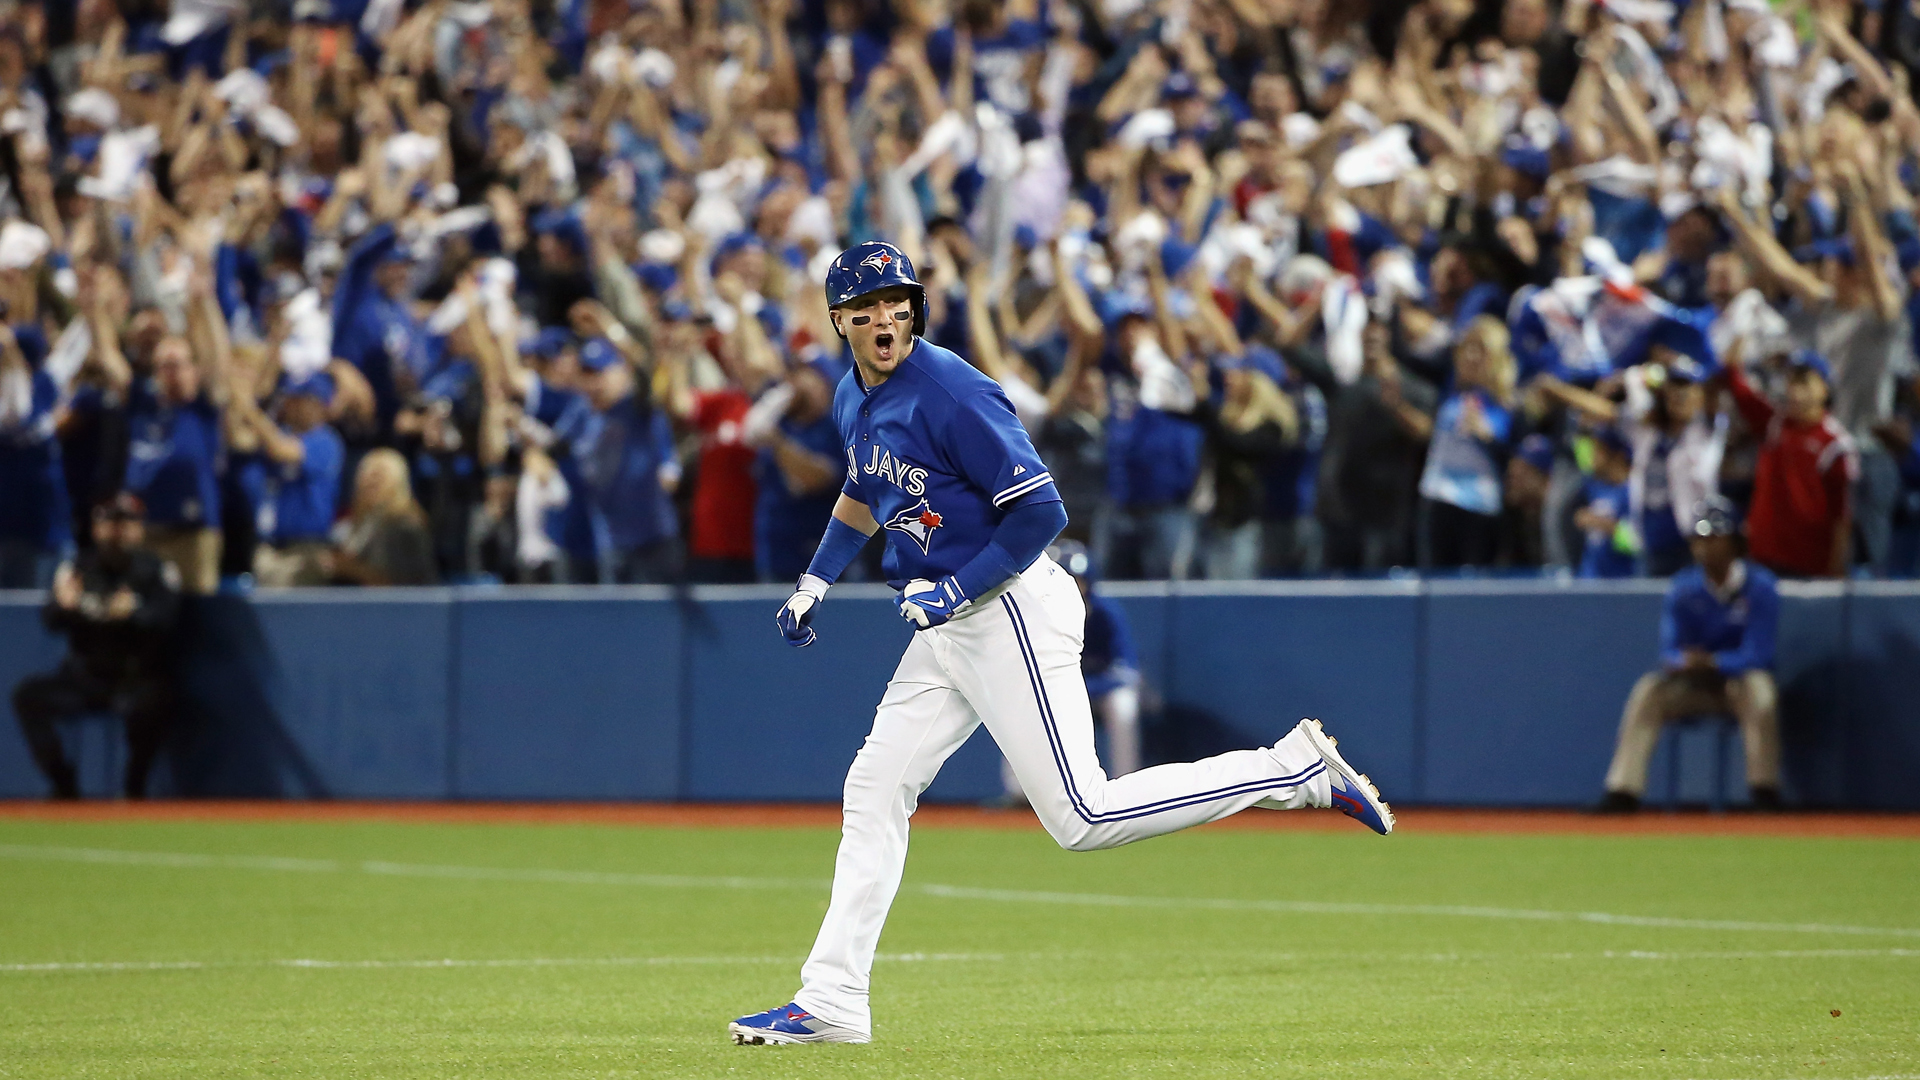 Blue Jays release Tulowitzki, write off $38M in salary still owing